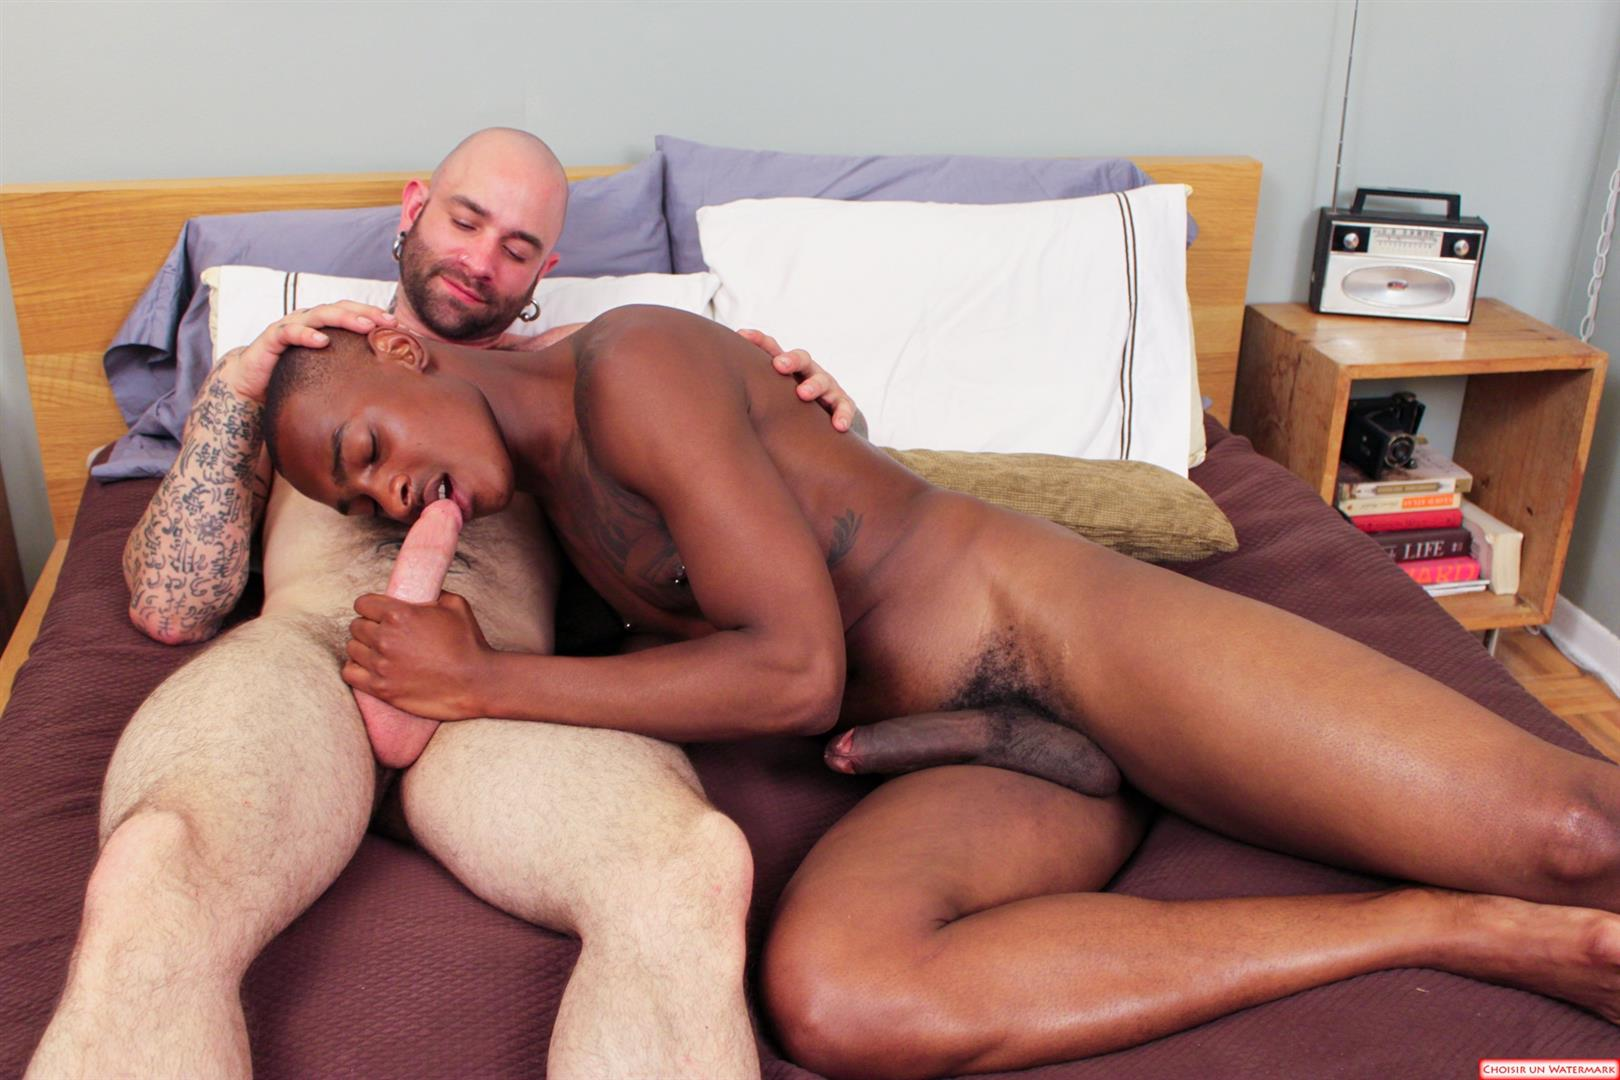 Next-Door-Ebony-Sam-Swift-and-Tyson-Tyler-Huge-Cock-Interracial-Fucking-Big-Black-Cock-Amateur-Gay-Porn-10 Tyson Tyler Opens His Tight Black Ass Up For A Big White Cock